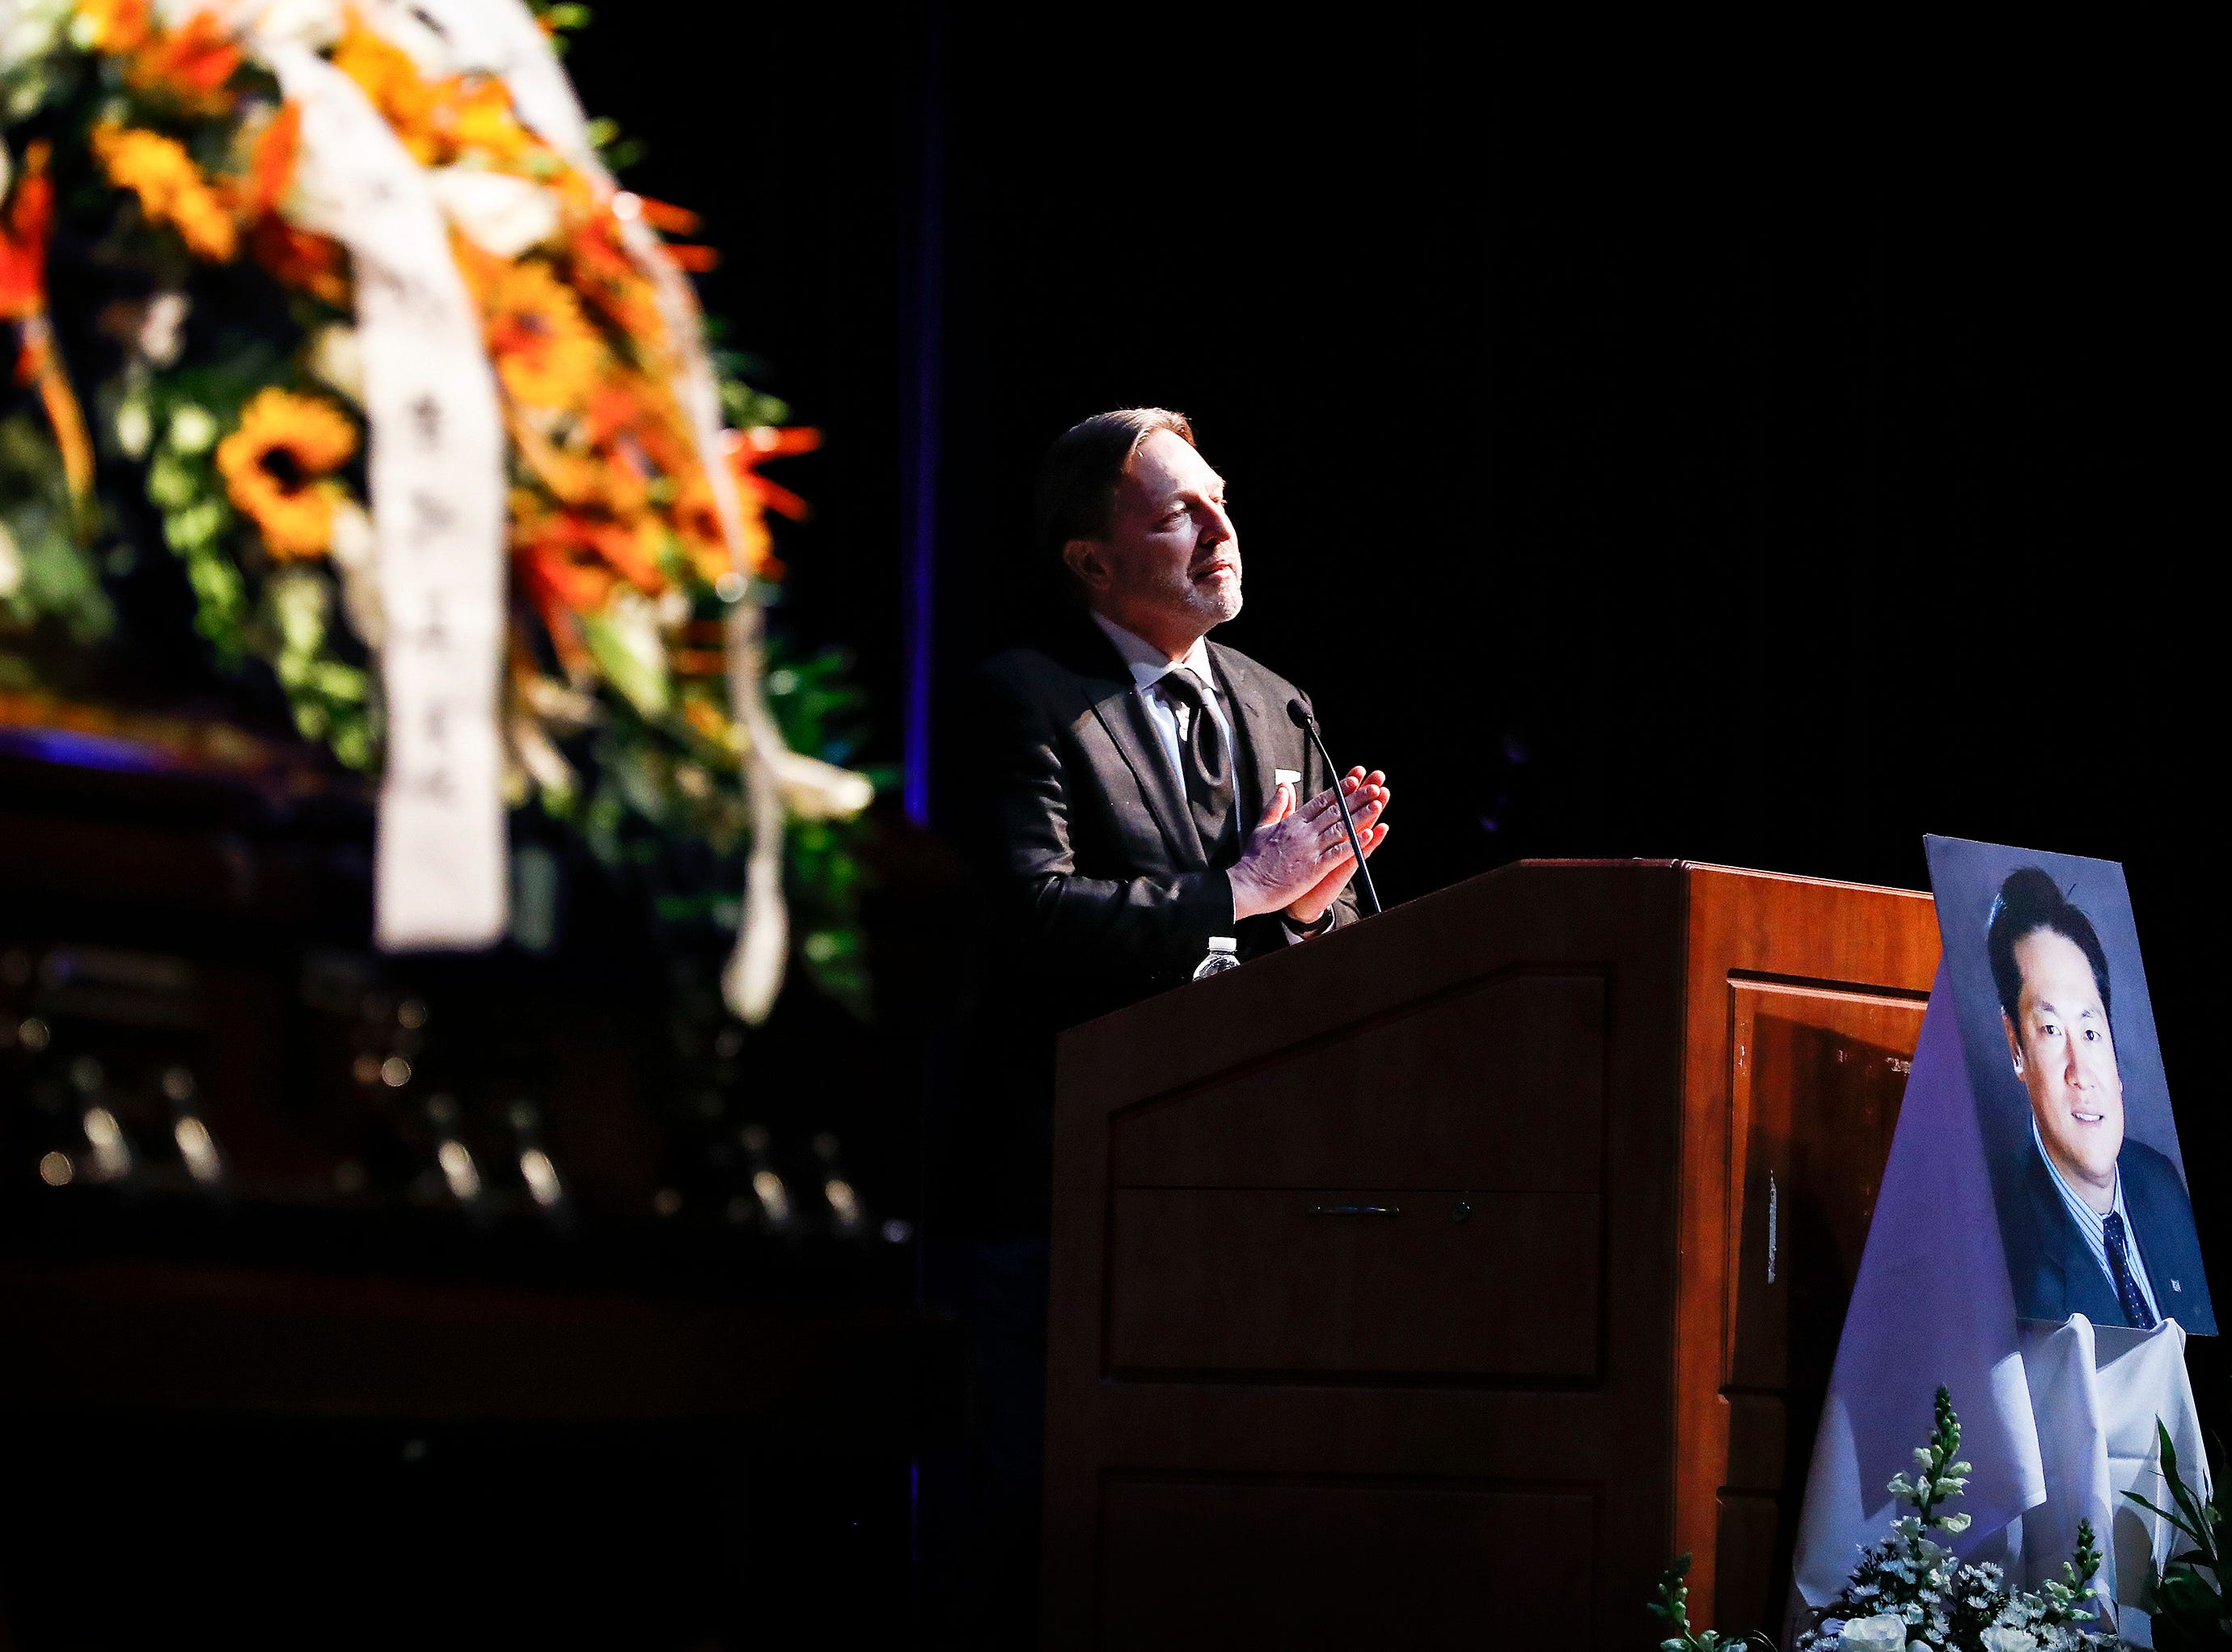 Family friend Verne Harnish speaks during a memorial service for Wei Chen, a Memphis businessman who died along with three other people in a plane crash in Georgia.